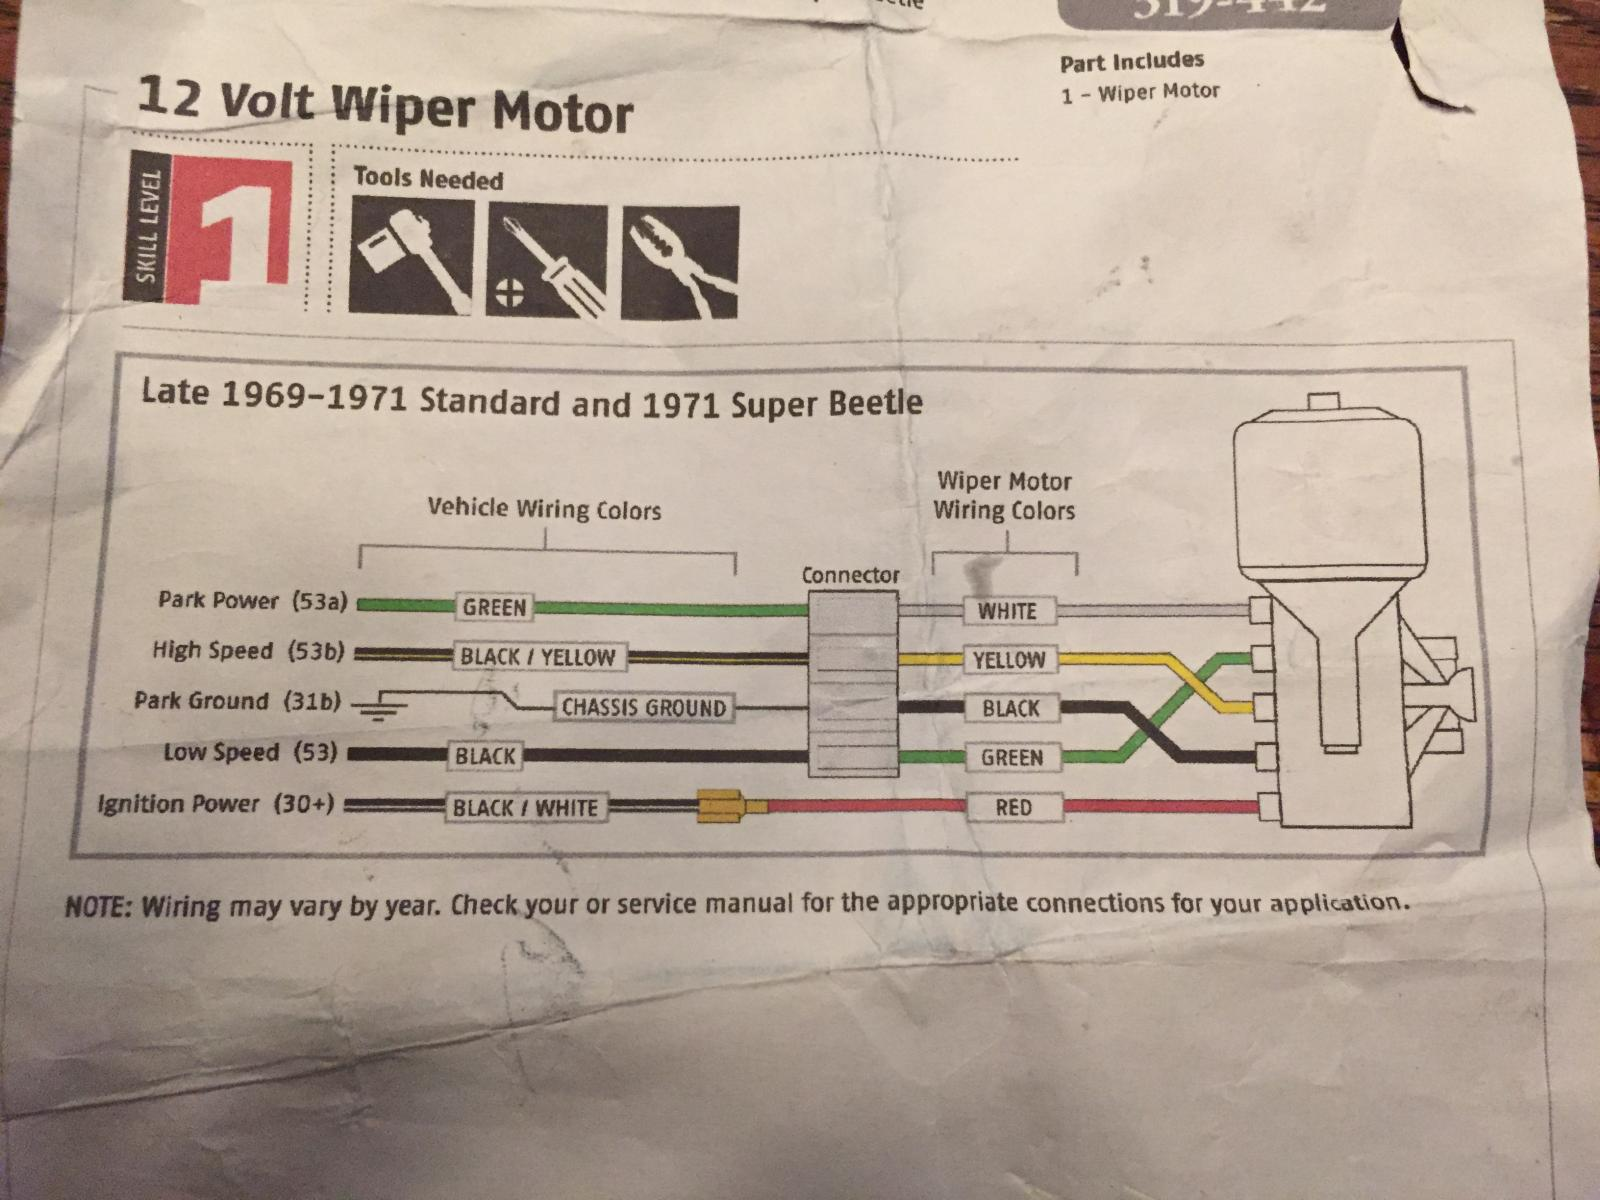 Hq Holden Wiper Motor Wiring Diagram - Wiring Diagram And ... on